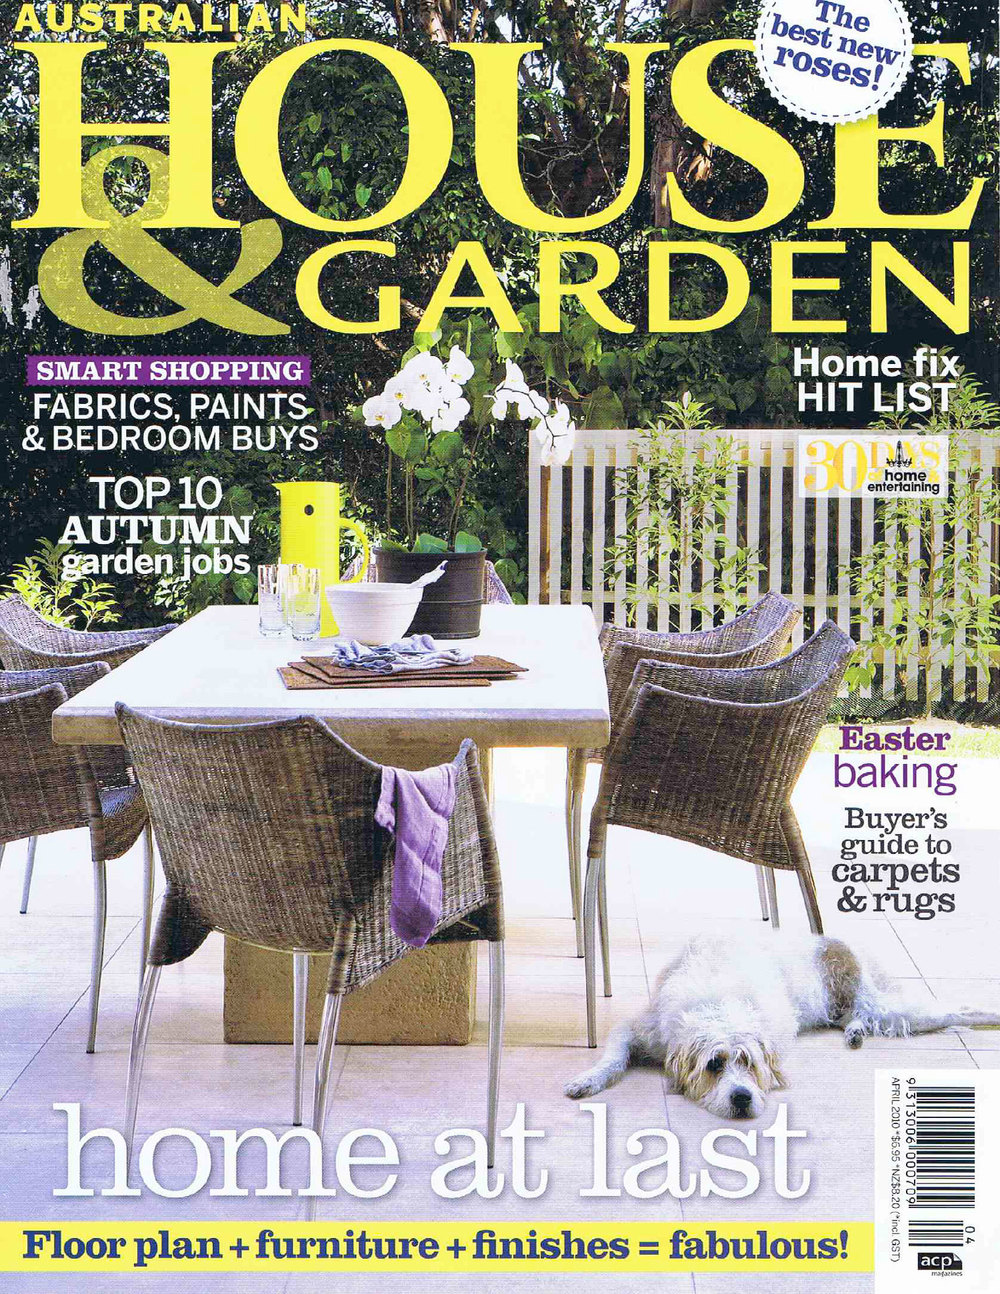 Australian-House&Garden-April2010.jpg